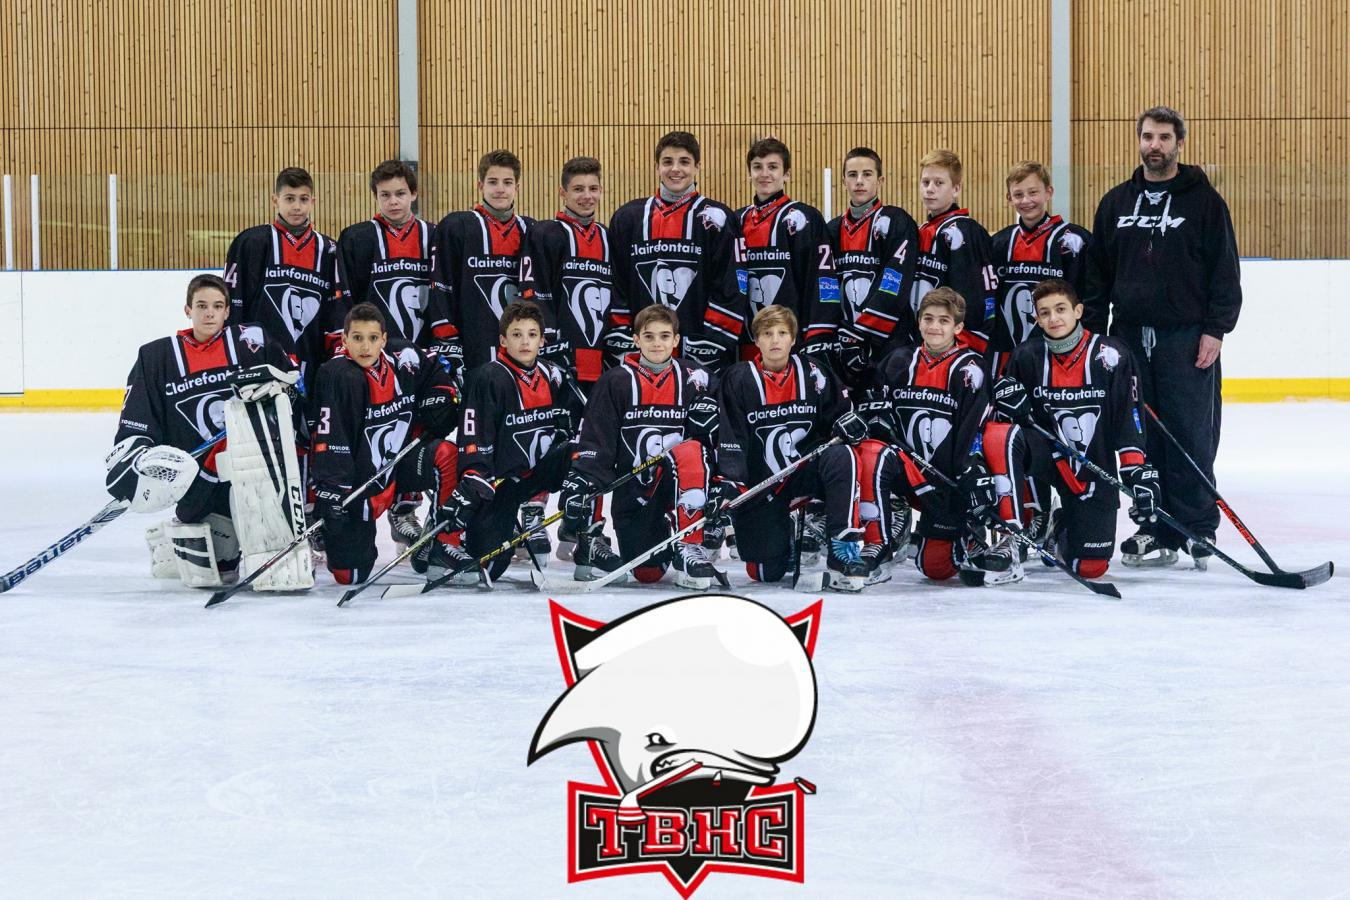 U15 - Toulouse Blagnac Hockey Club